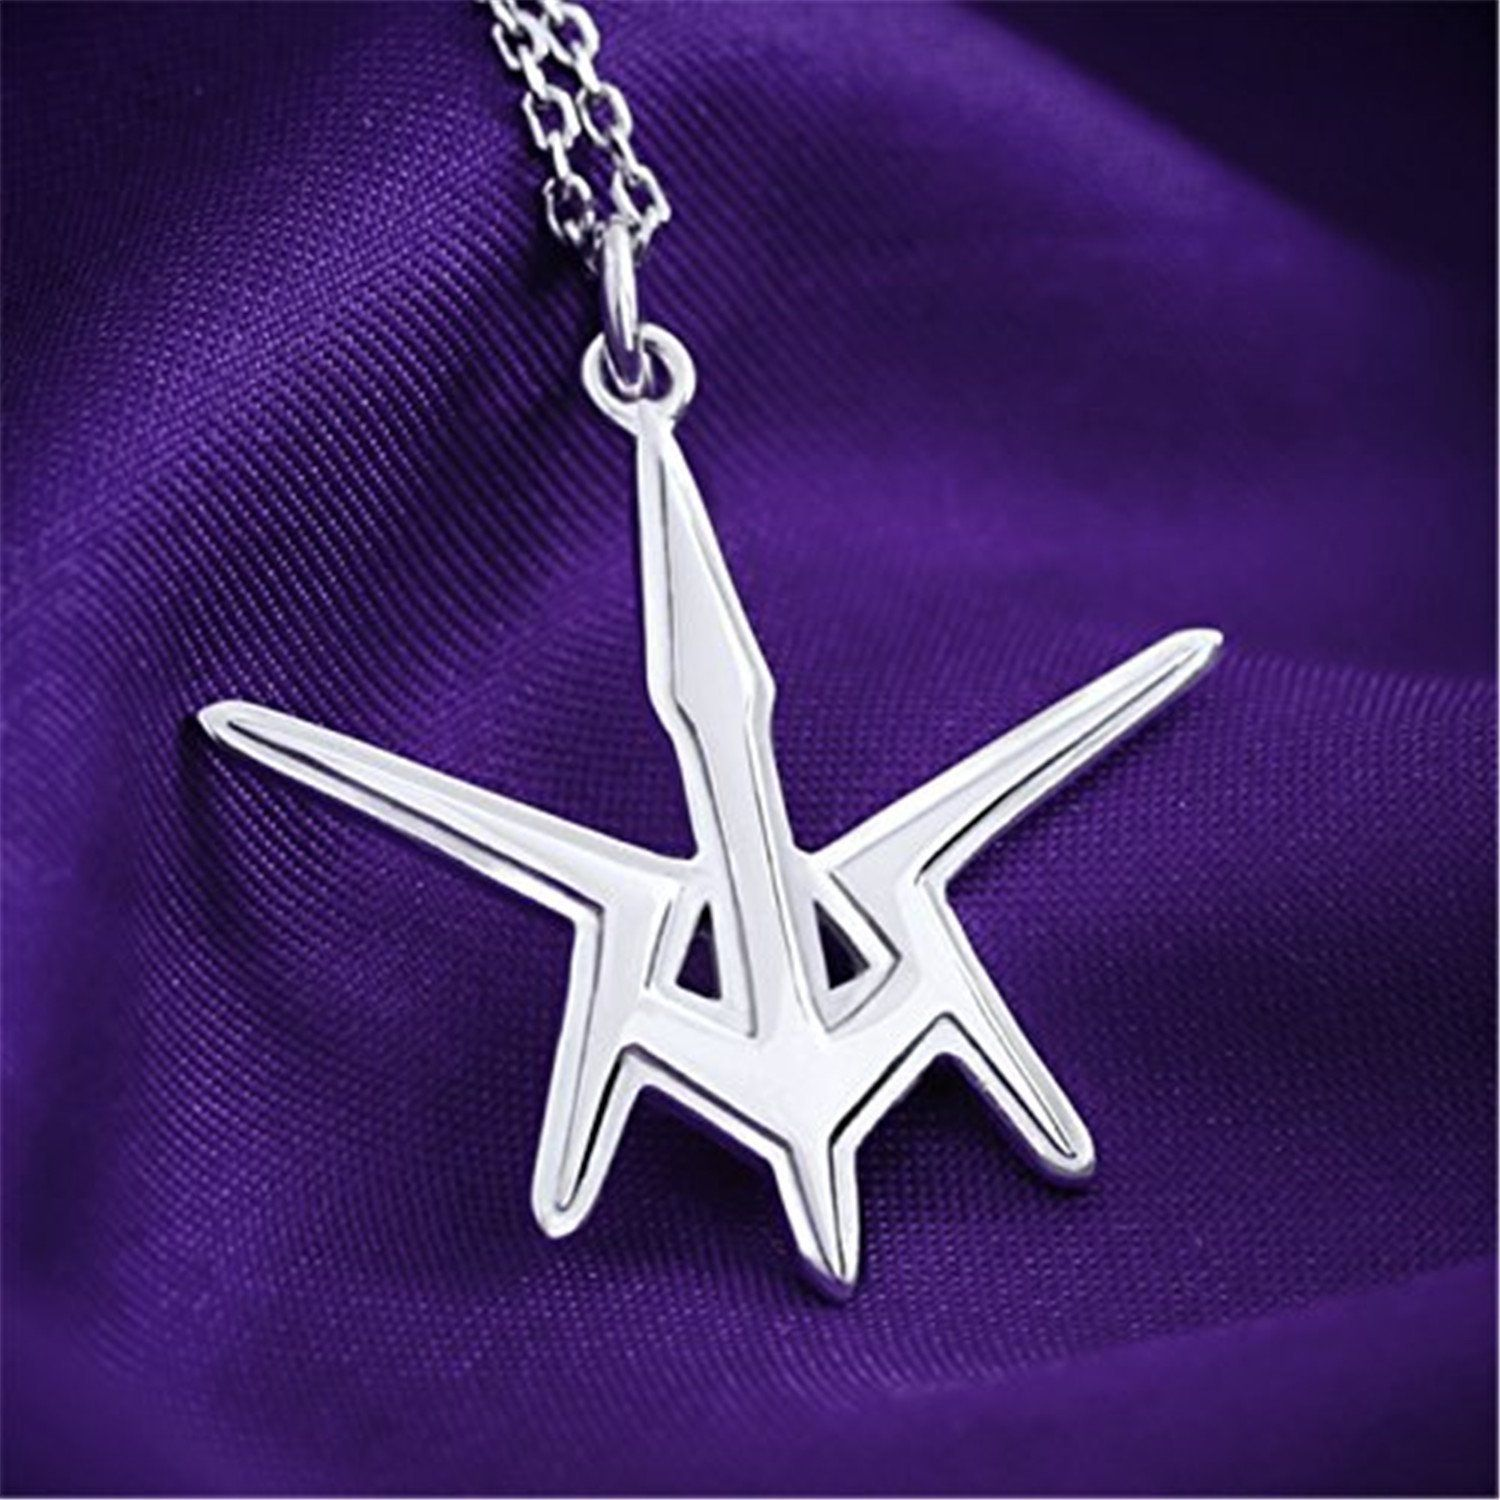 Vicwin One Code Geass Black Knights Logo Necklace 925 Sterling